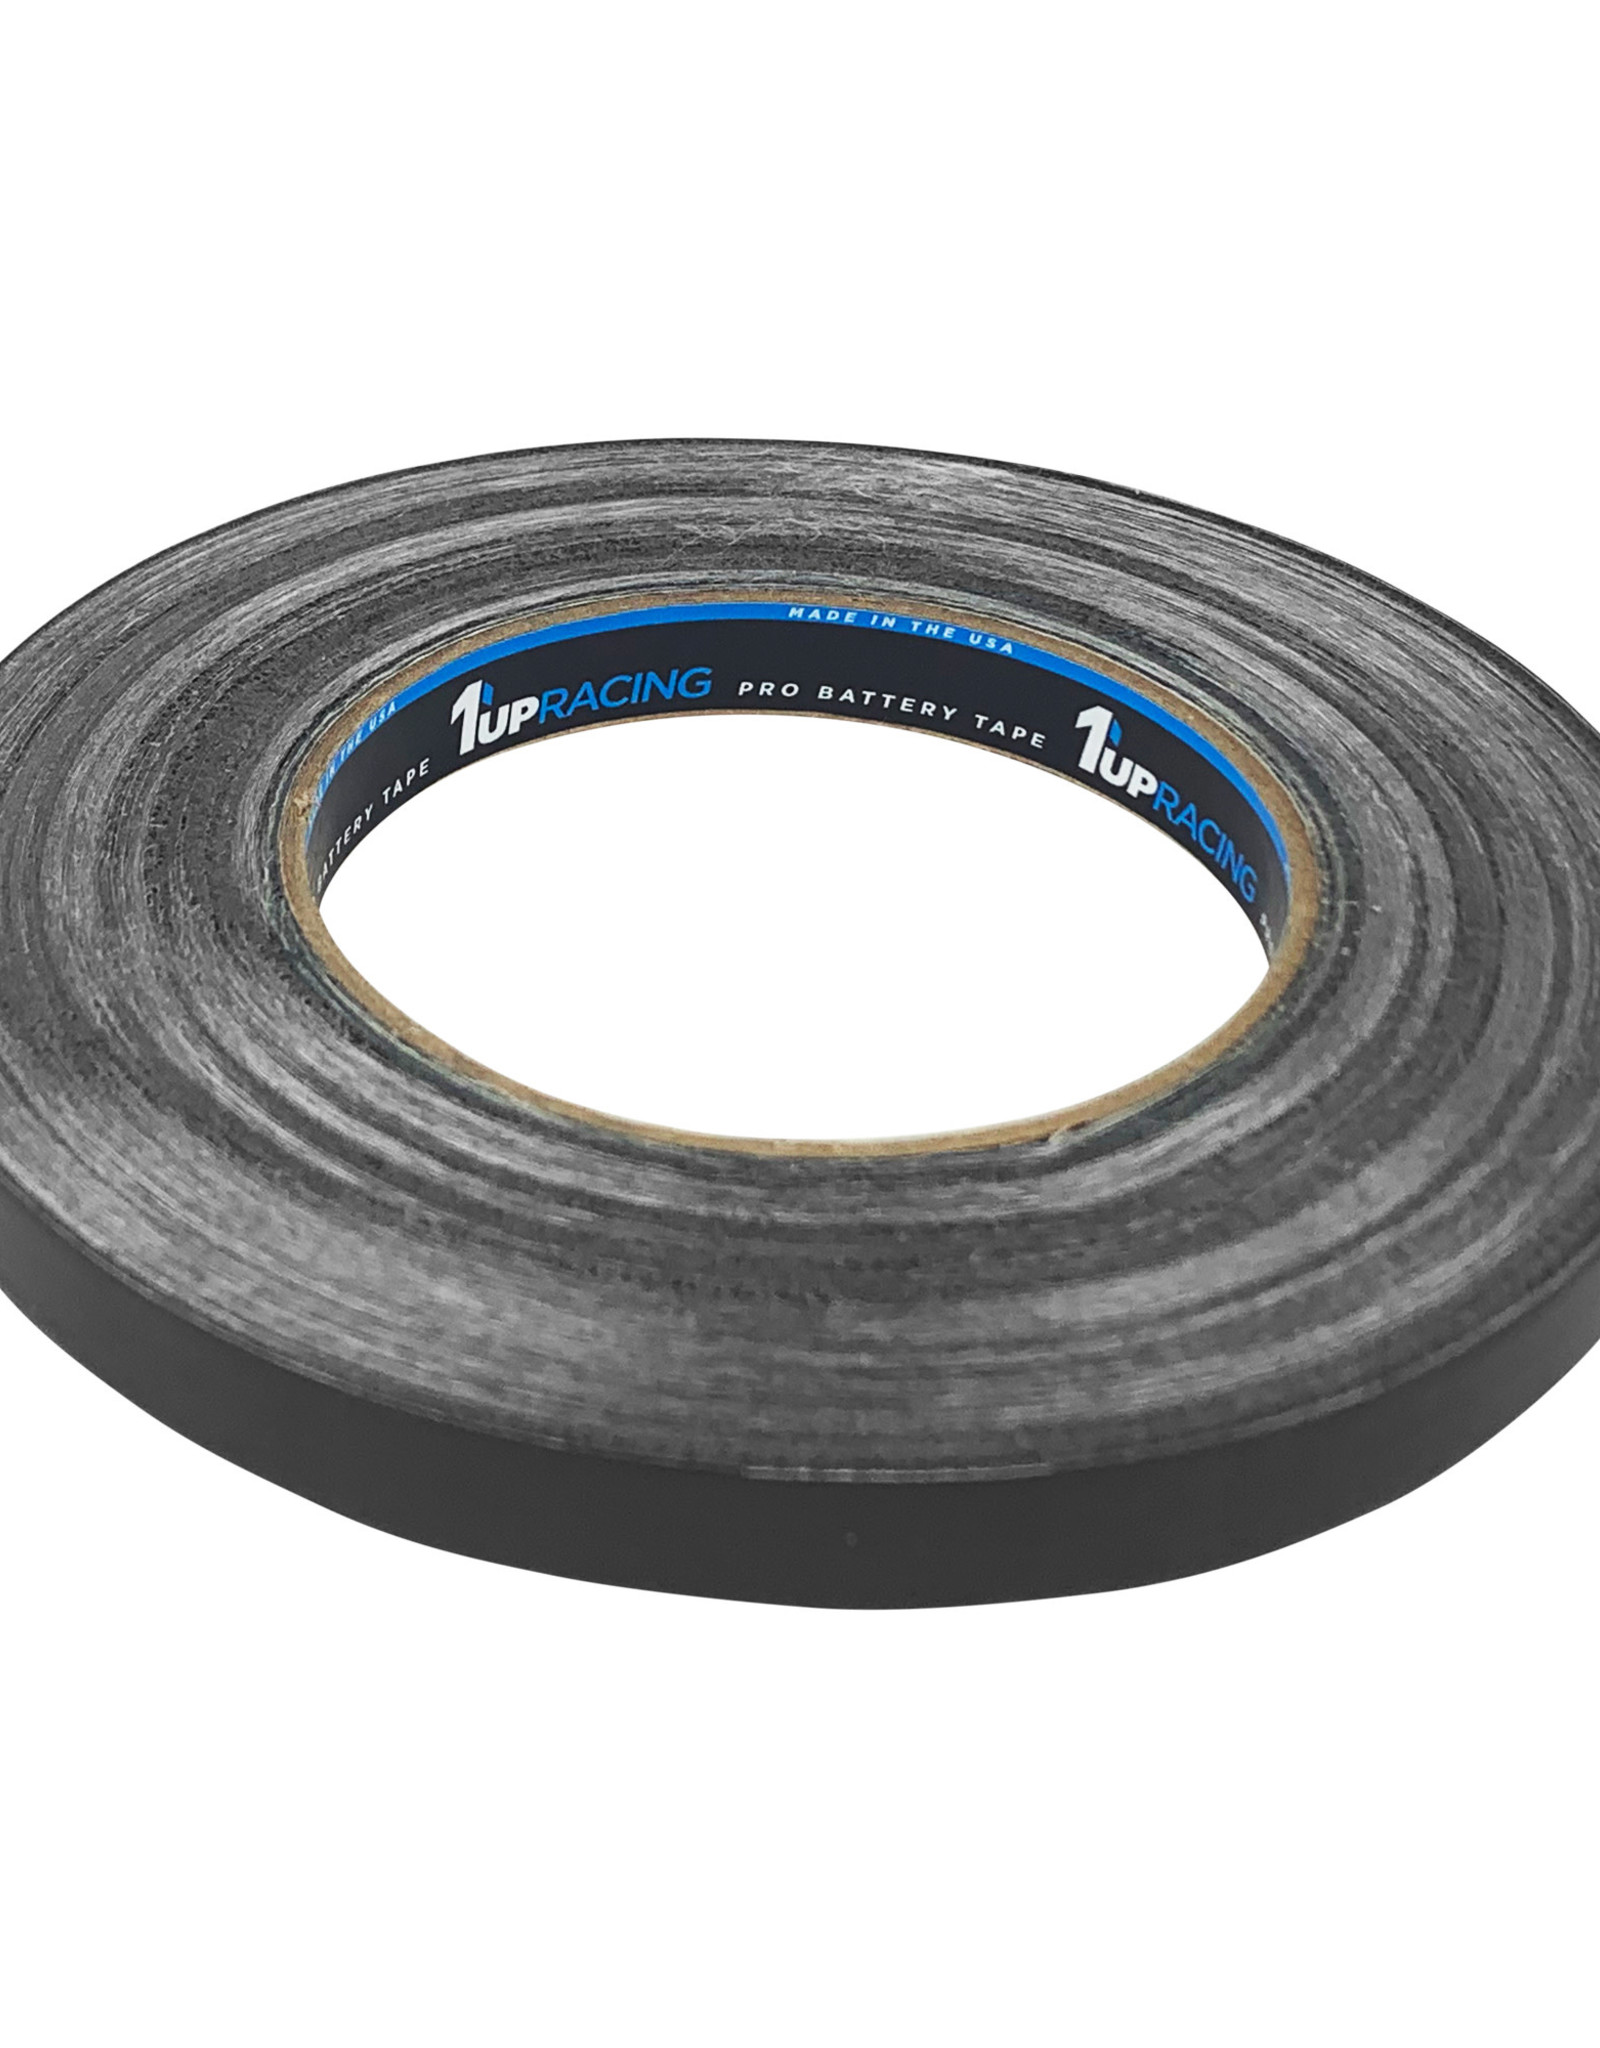 1UP 1UP Racing pro battery tape